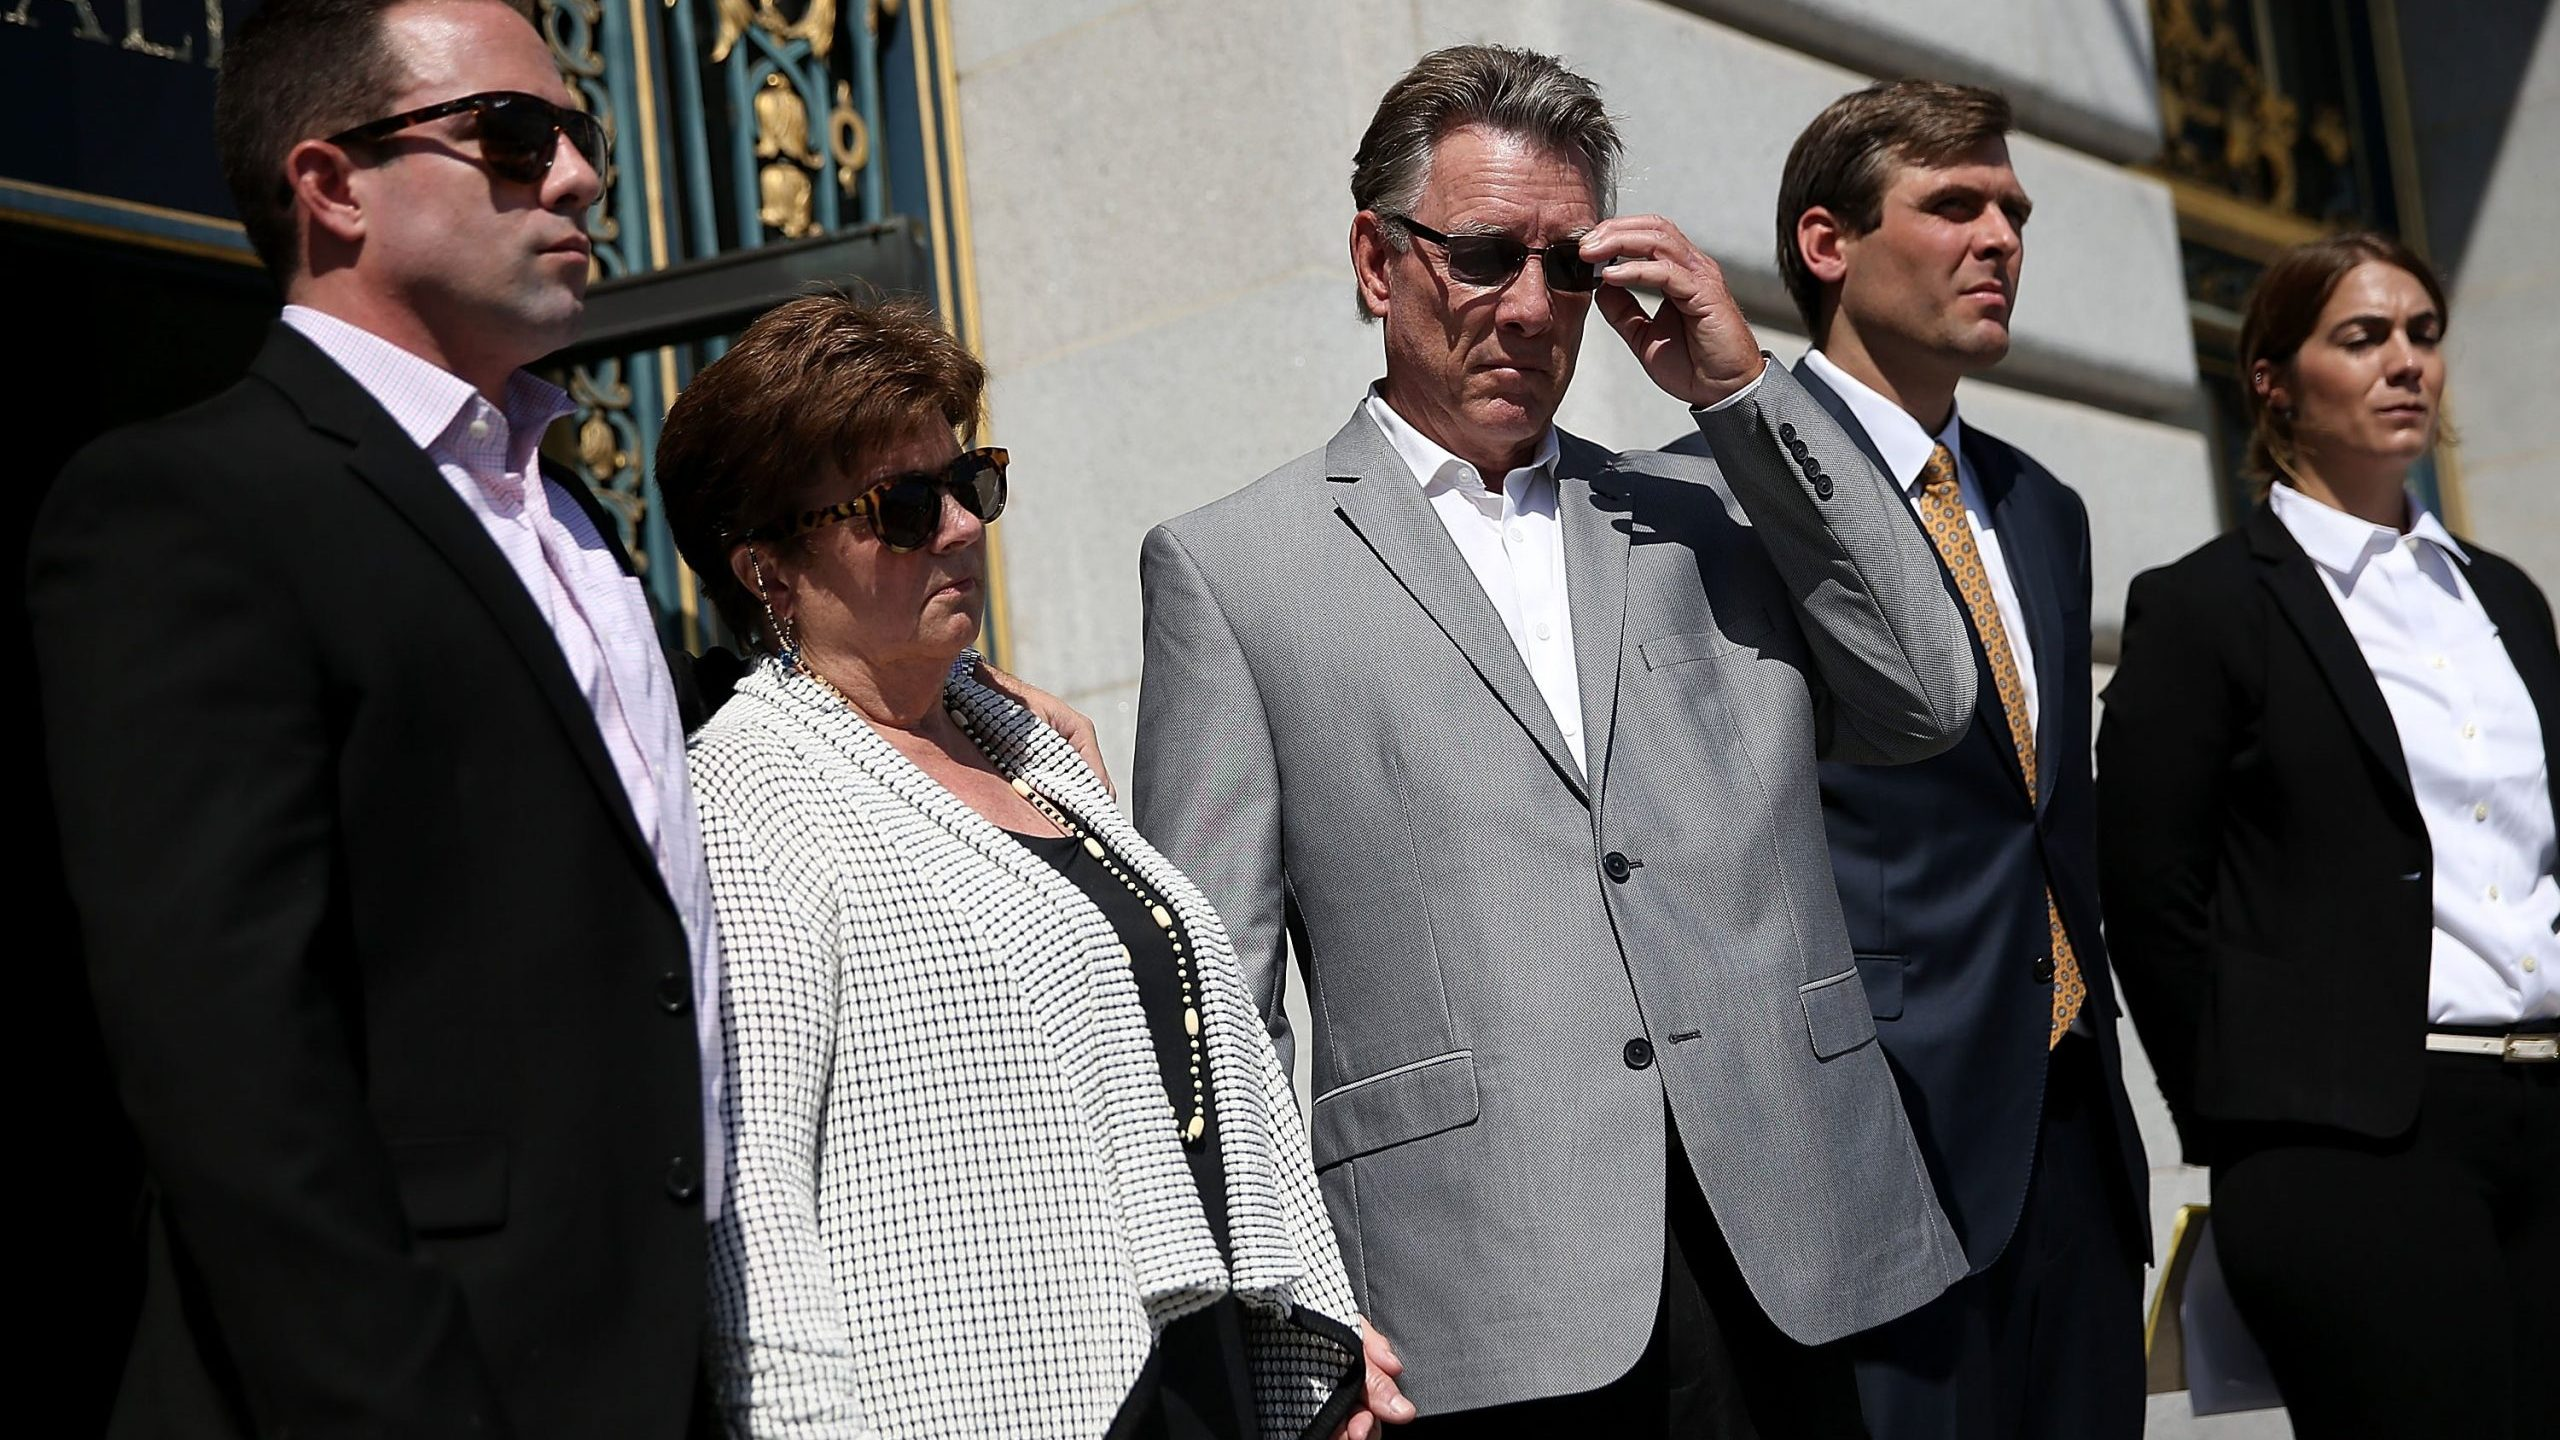 From left: Brad Steinle, Liz Sullivan and Jim Steinle, the family of Kate Steinle, look on during a news conference in San Francisco announcing their lawsuit against the government on Sept. 1, 2015. (Credit: Justin Sullivan / Getty Images)